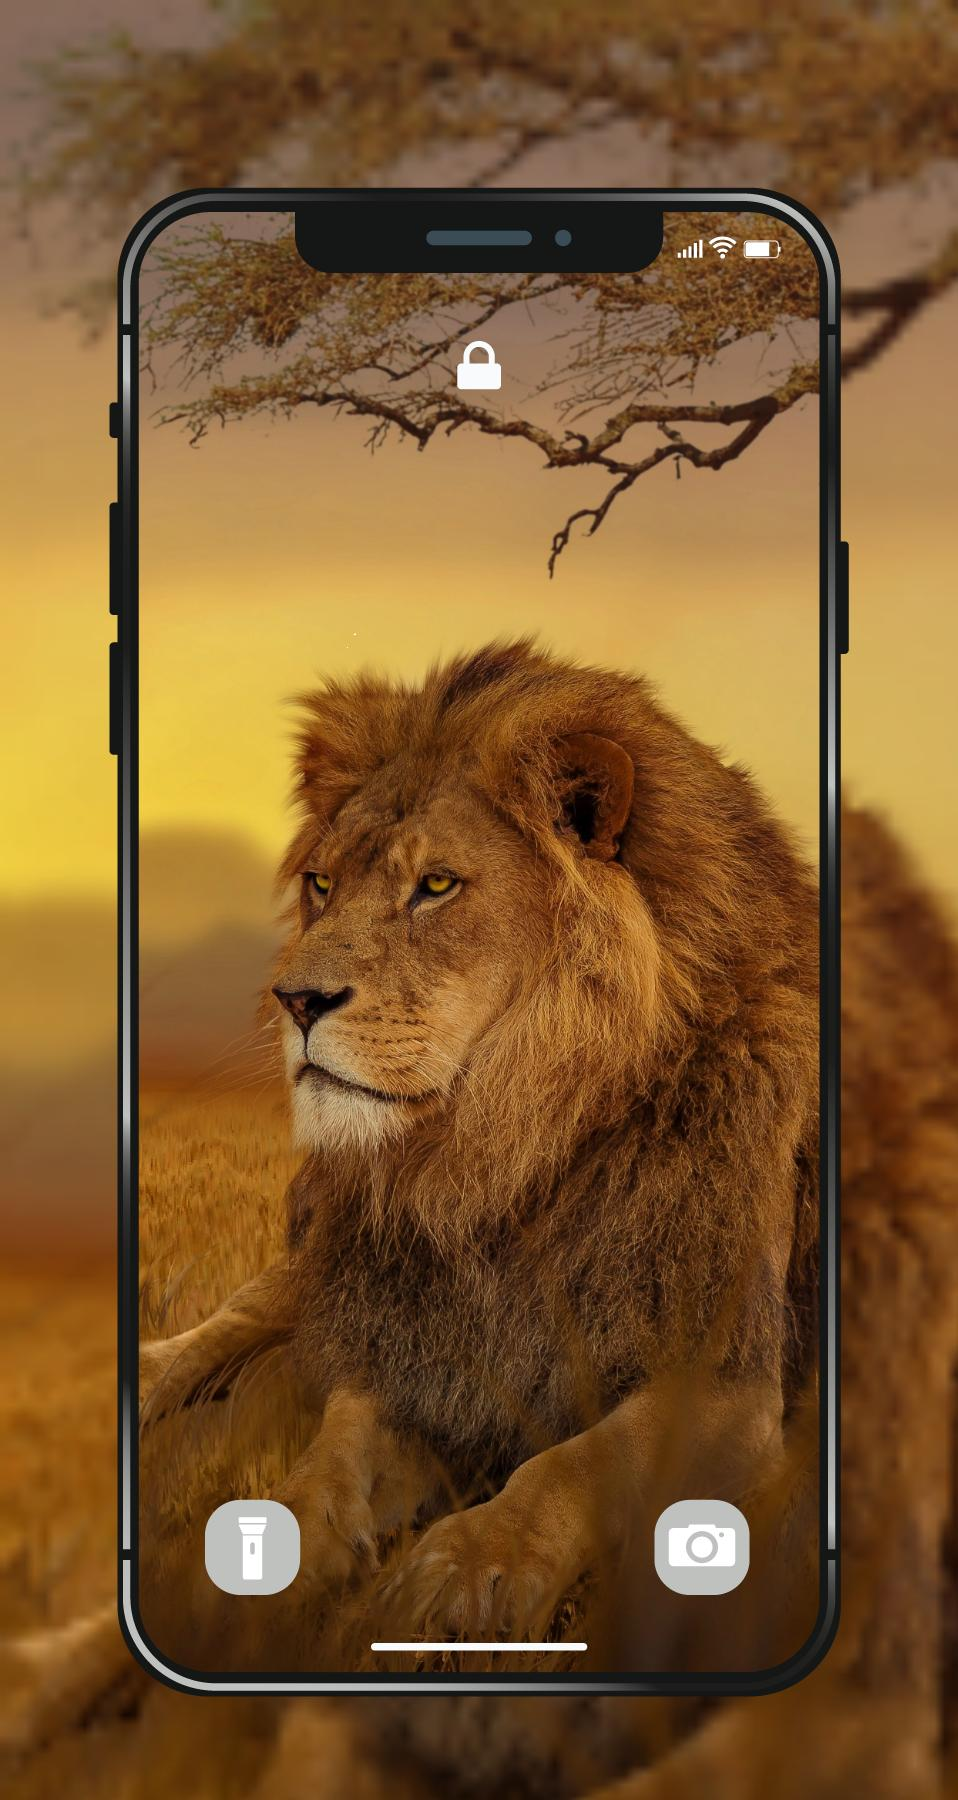 Lion Wallpapers Angry 4k Hd Lion Pictures For Android Apk Download